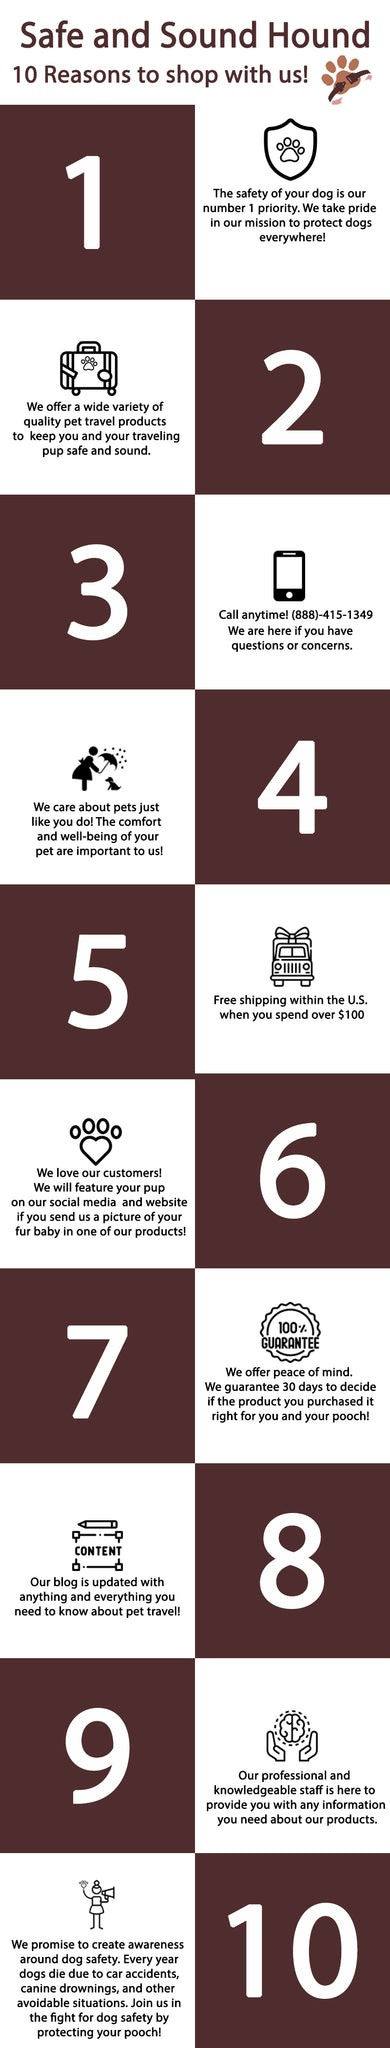 10 Reasons to Shop With Us